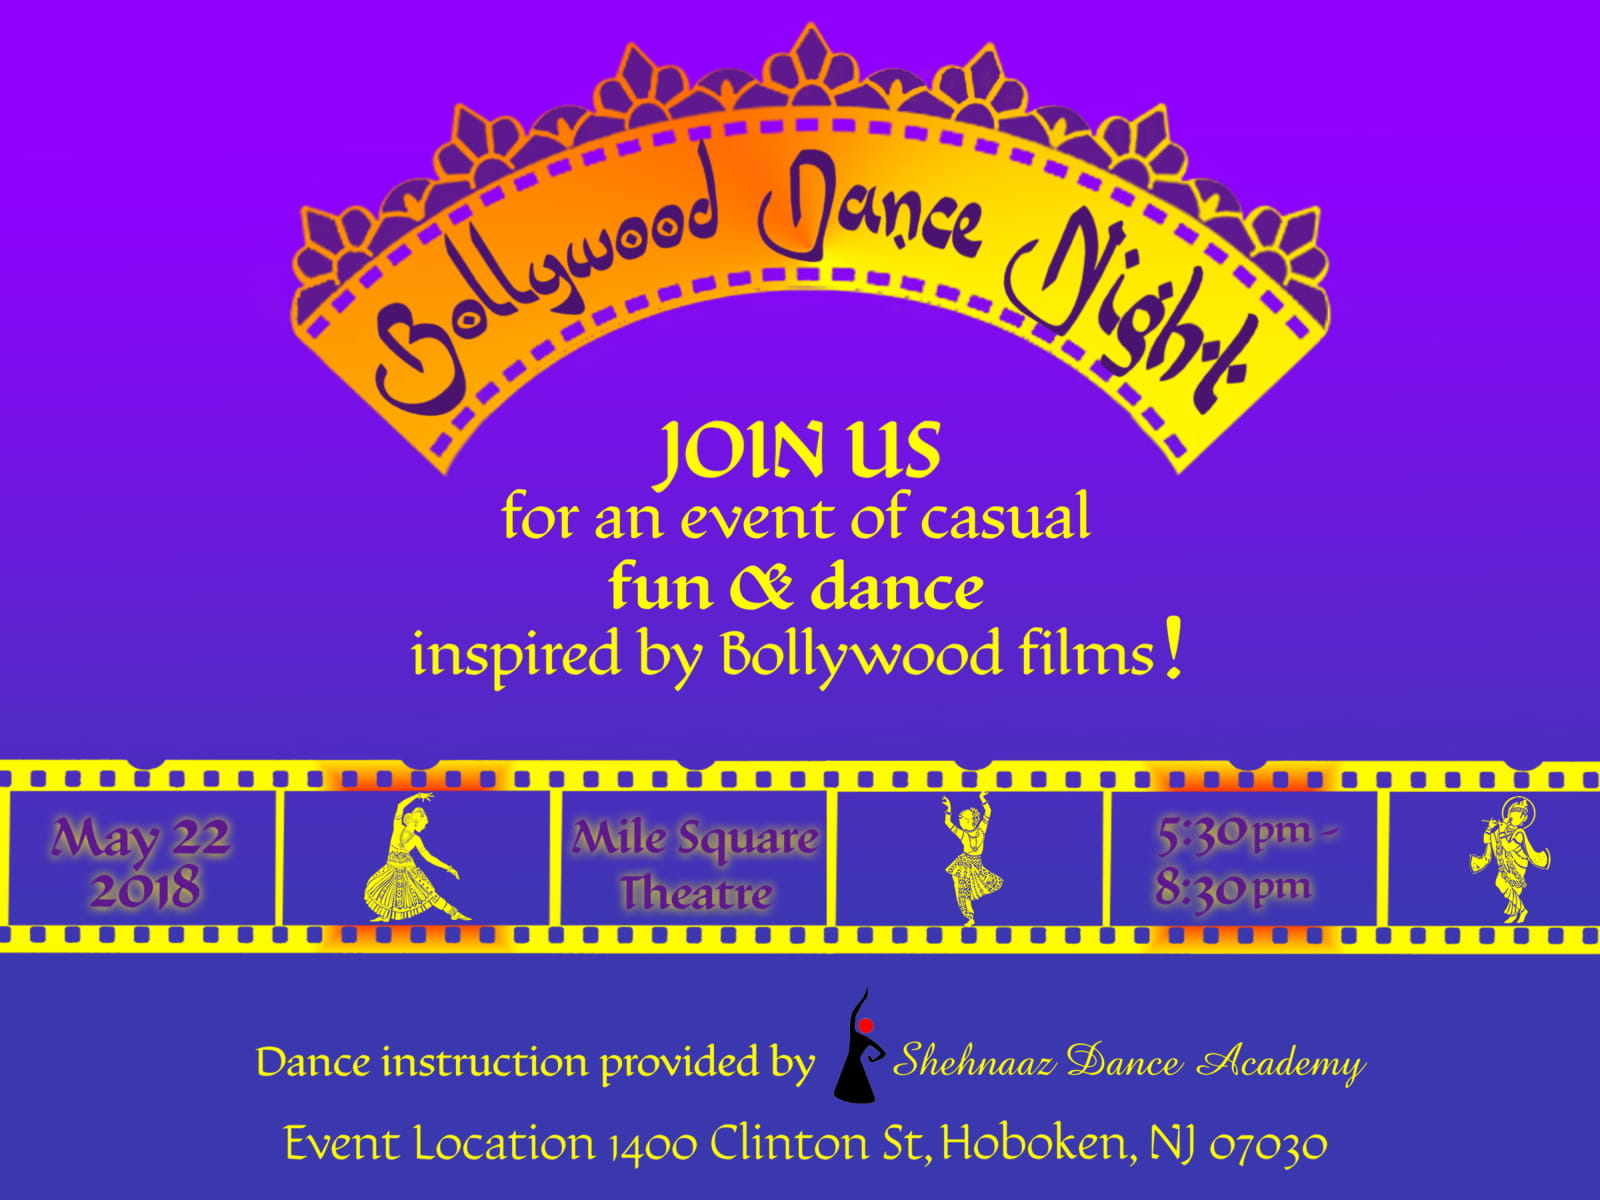 Bollywood Invite-1.jpg